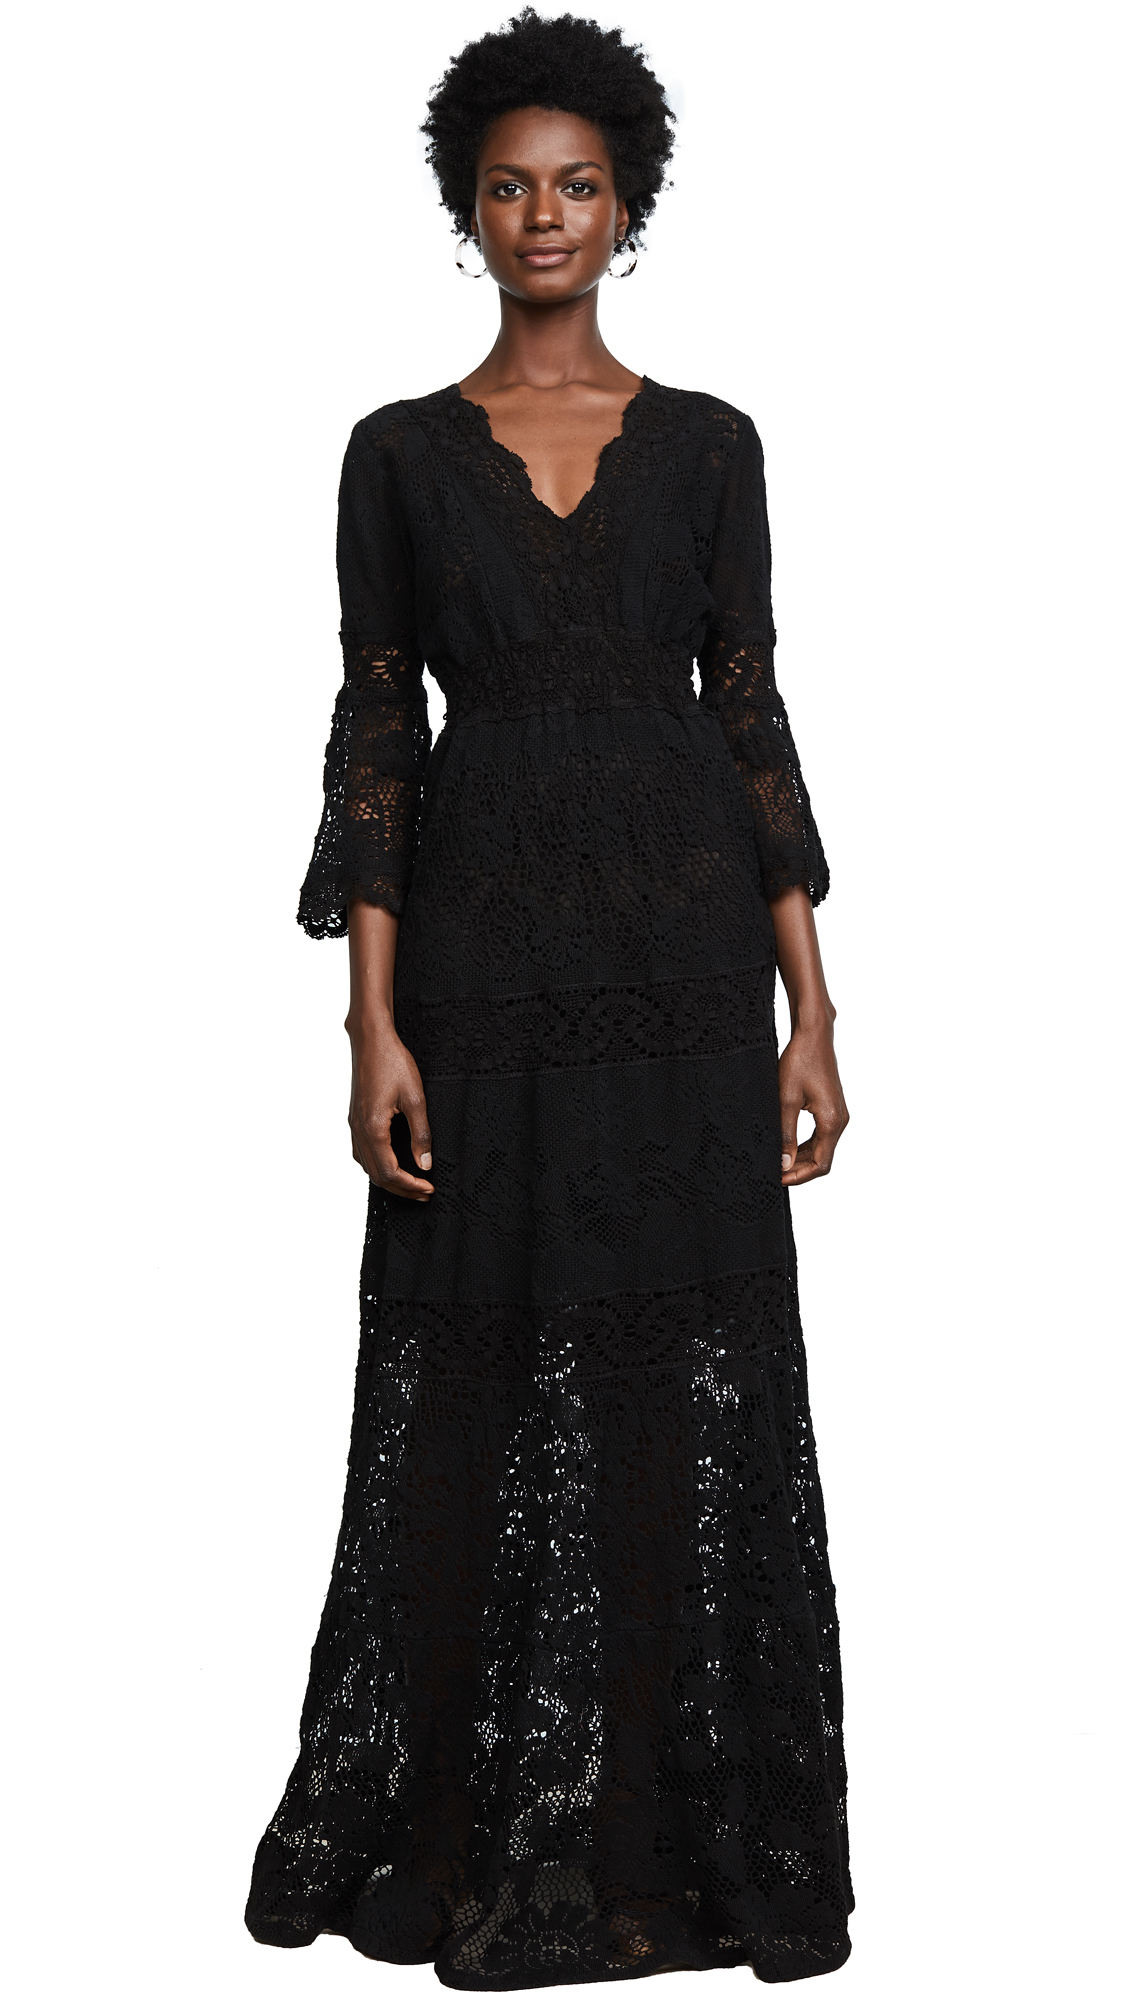 Temptation Positano Caledonia V Neck Long Sleeve Dress - Black